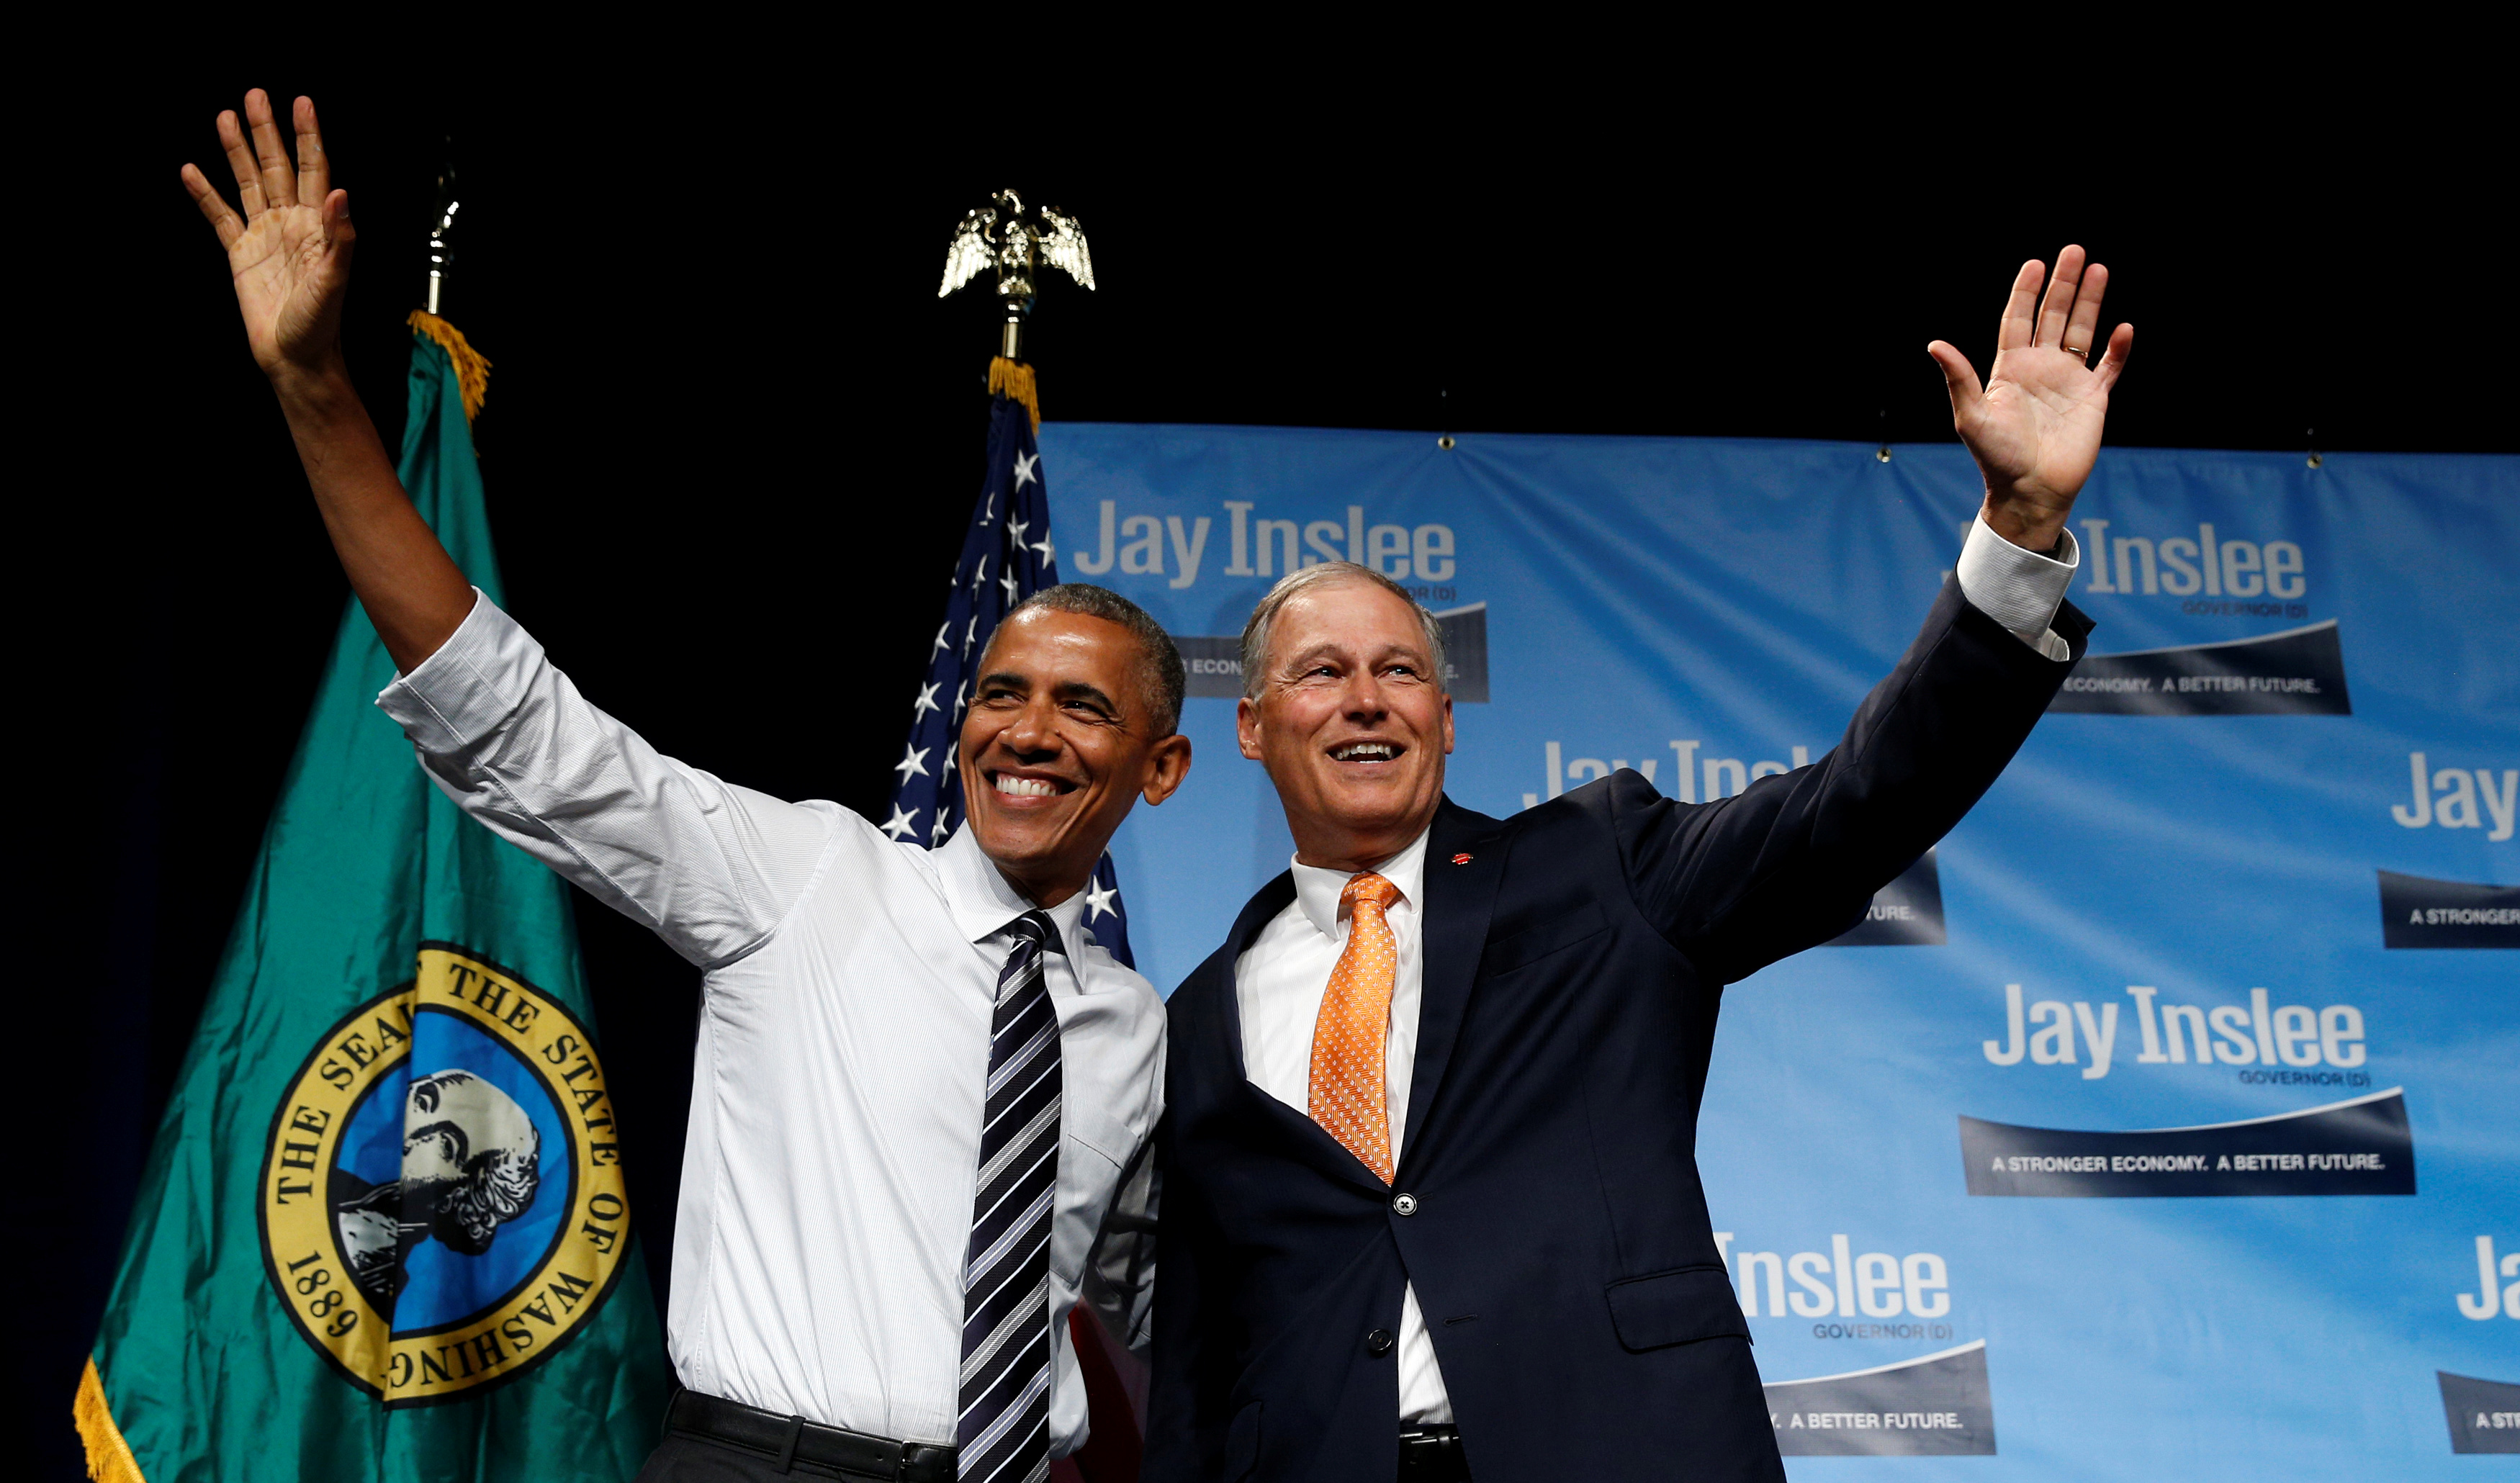 U.S. President Barack Obama waves as he arrives to speak at a fundraiser for Washington Governor Jay Inslee in Seattle